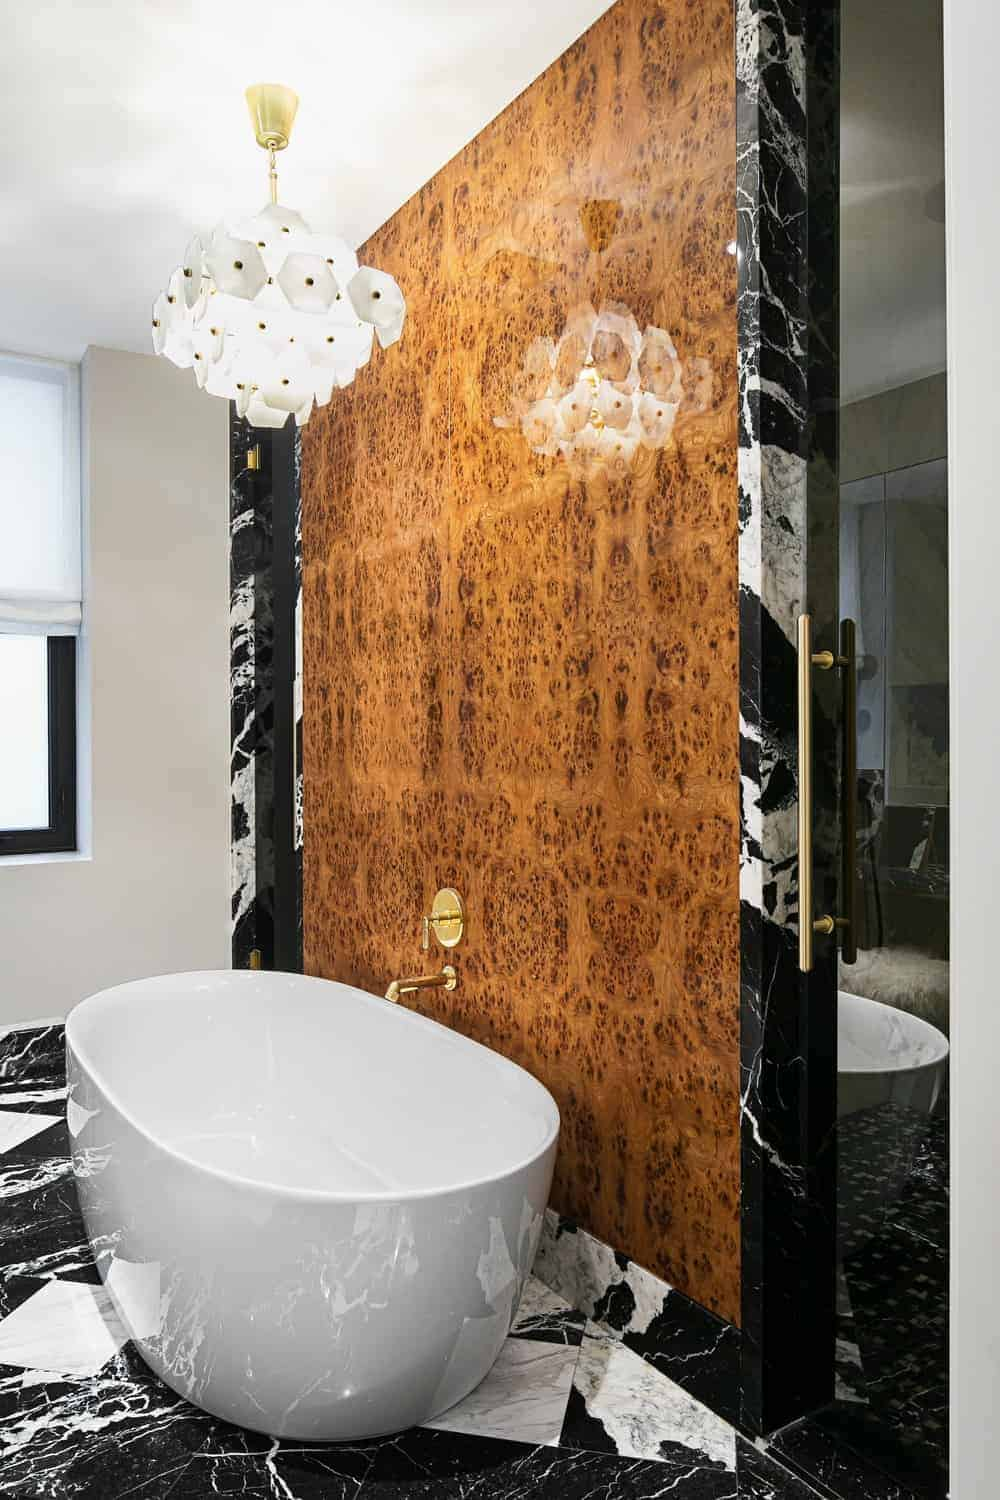 This charming bathroom oozes with elegance in its elliptical freestanding bathtub that stands out against the black and white marble tiles of the flooring extending to the frame of the brown wall that houses the golden faucet.